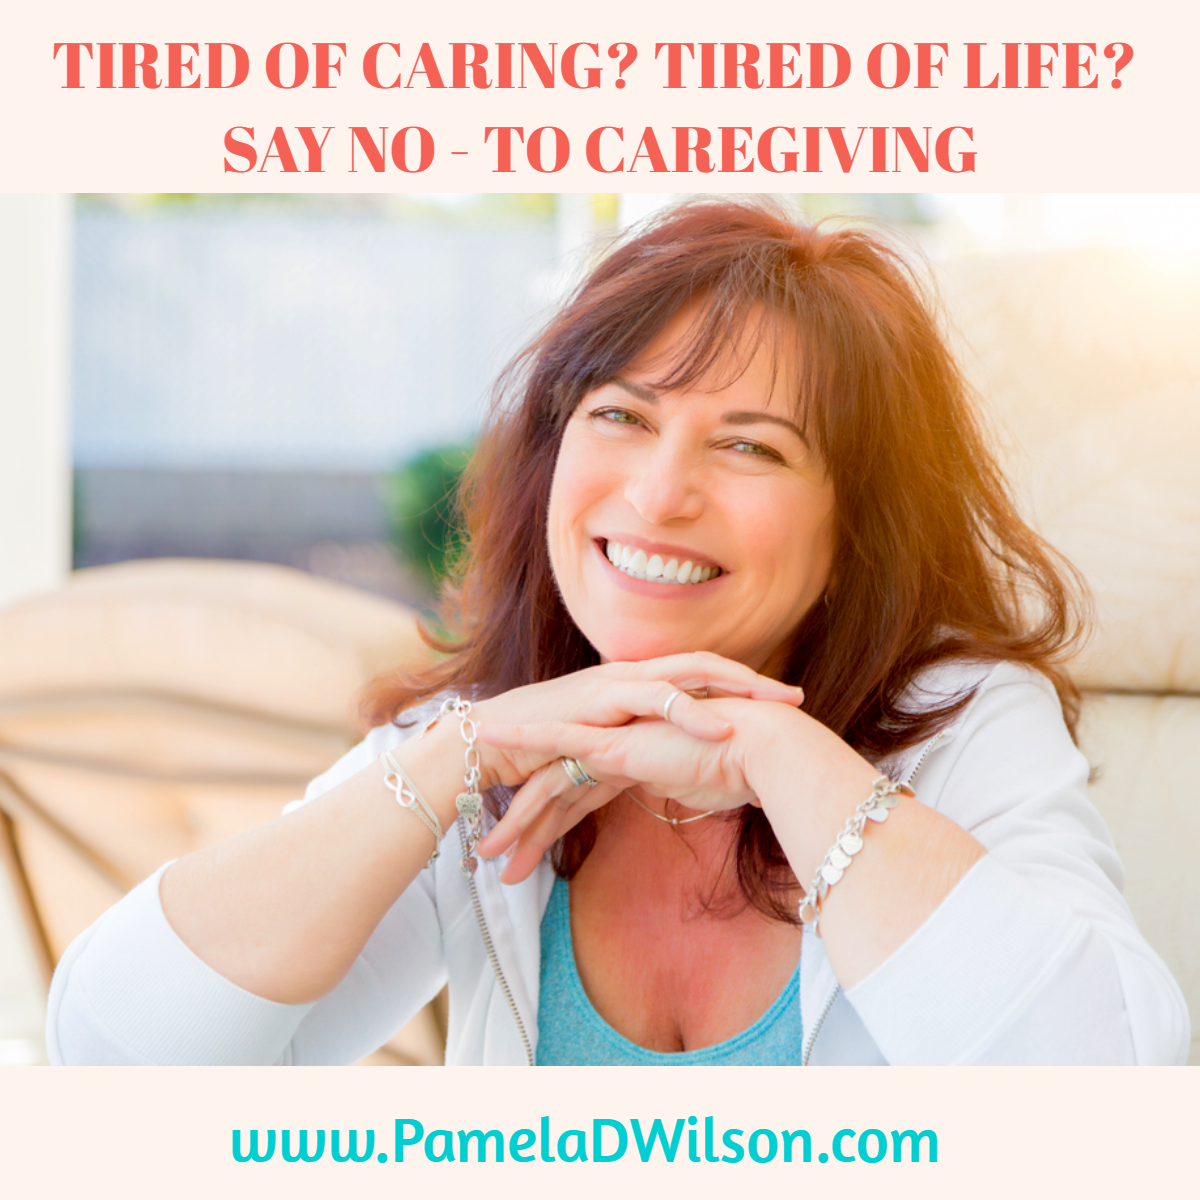 Tired of Caring? Tired of Life? Say No to Caregiving